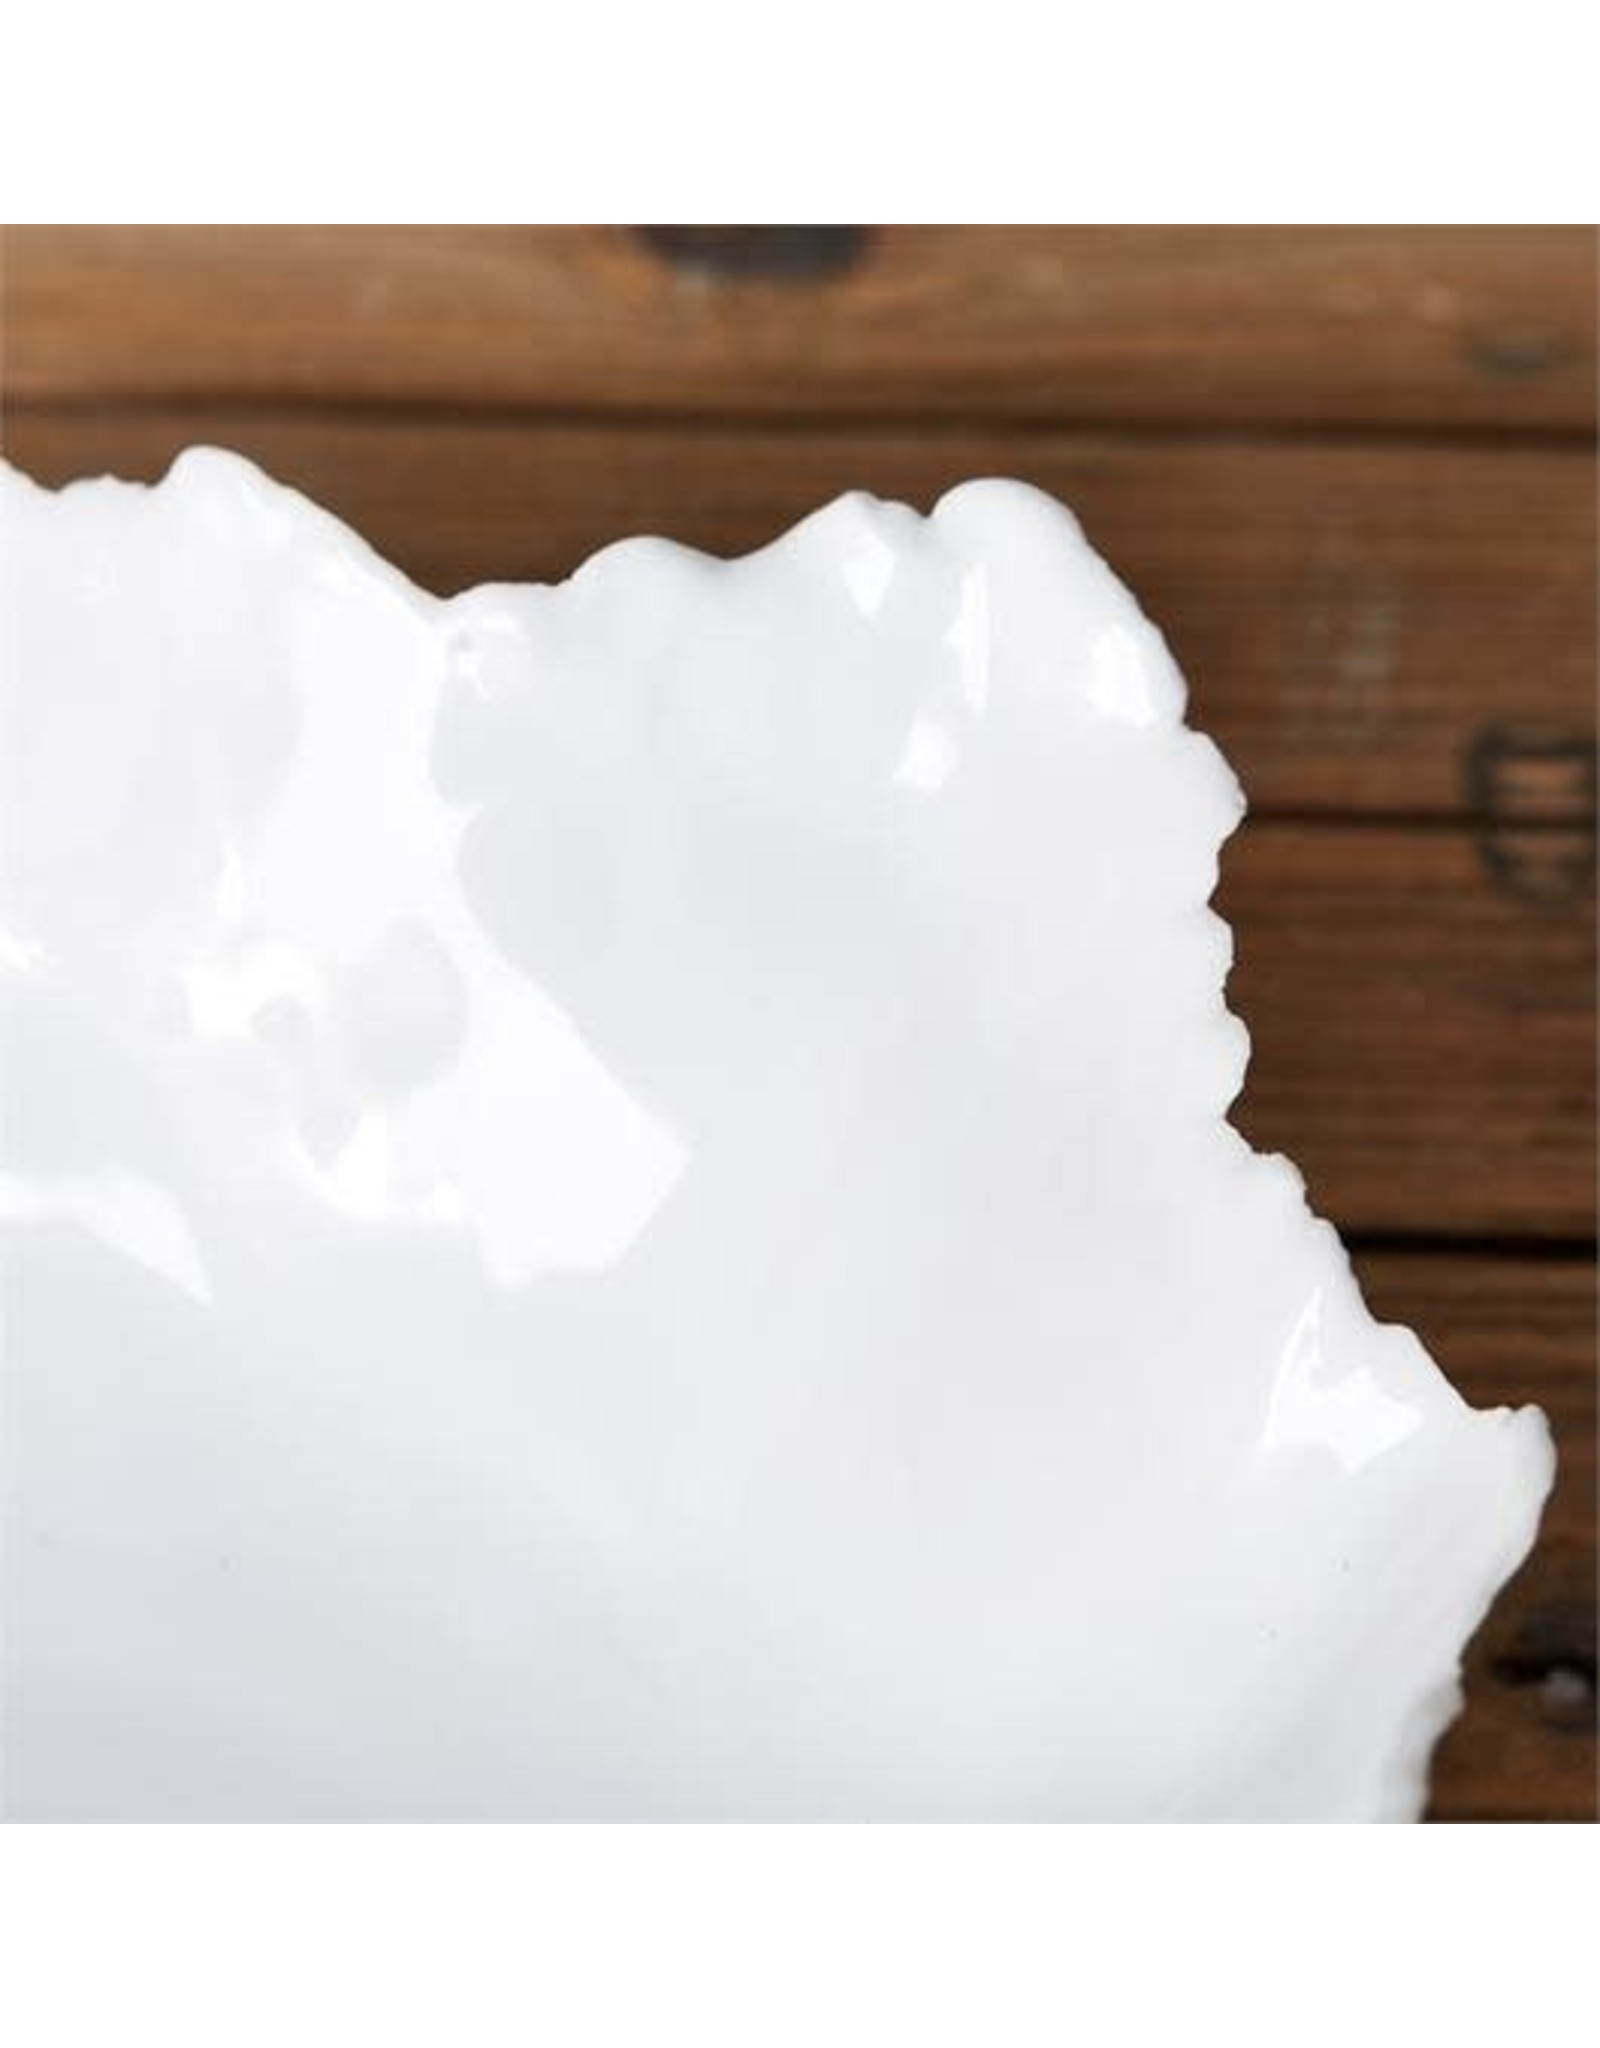 Large White Freeform Ceramic Bowl